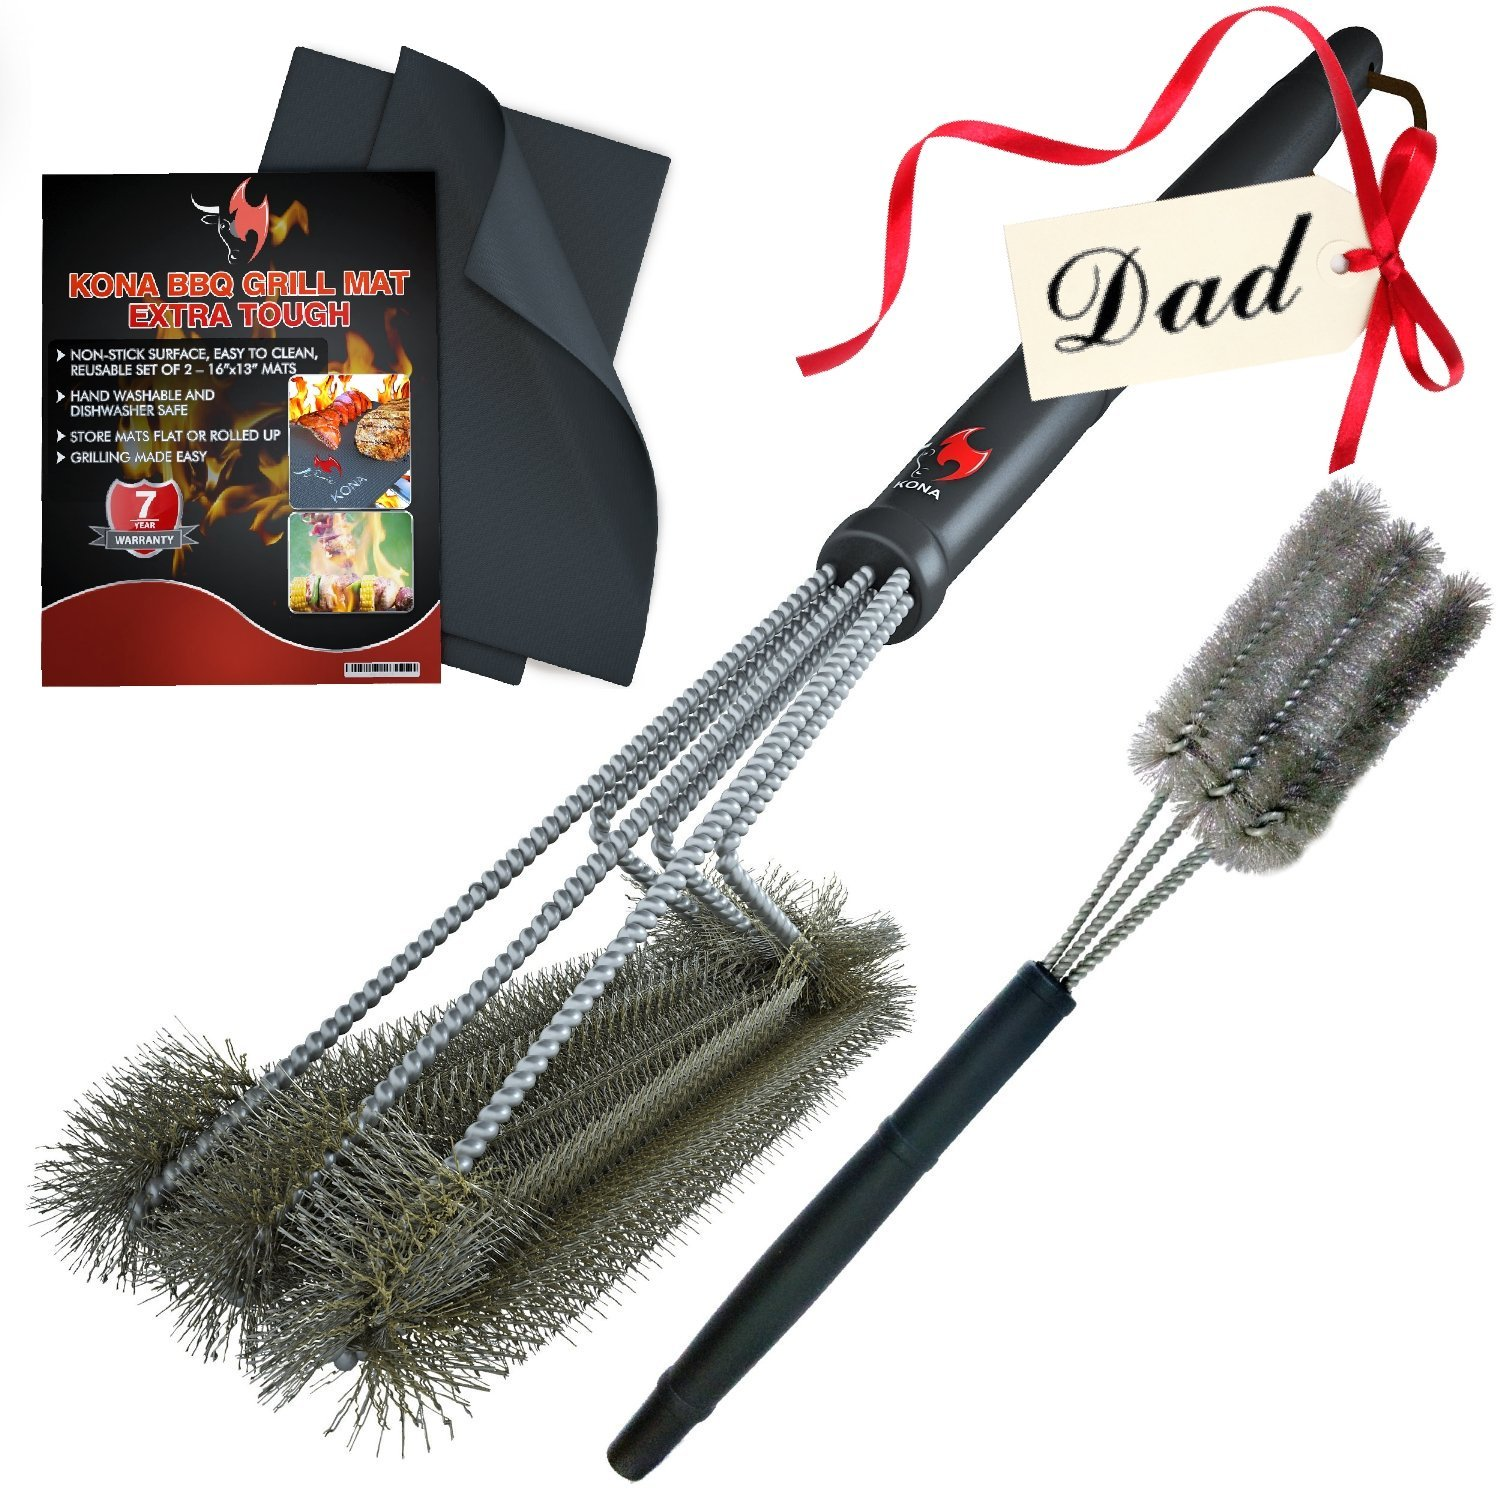 Kona Grill Accessories Collections Barbecue Tool Gift Sets Multiple Available For Men